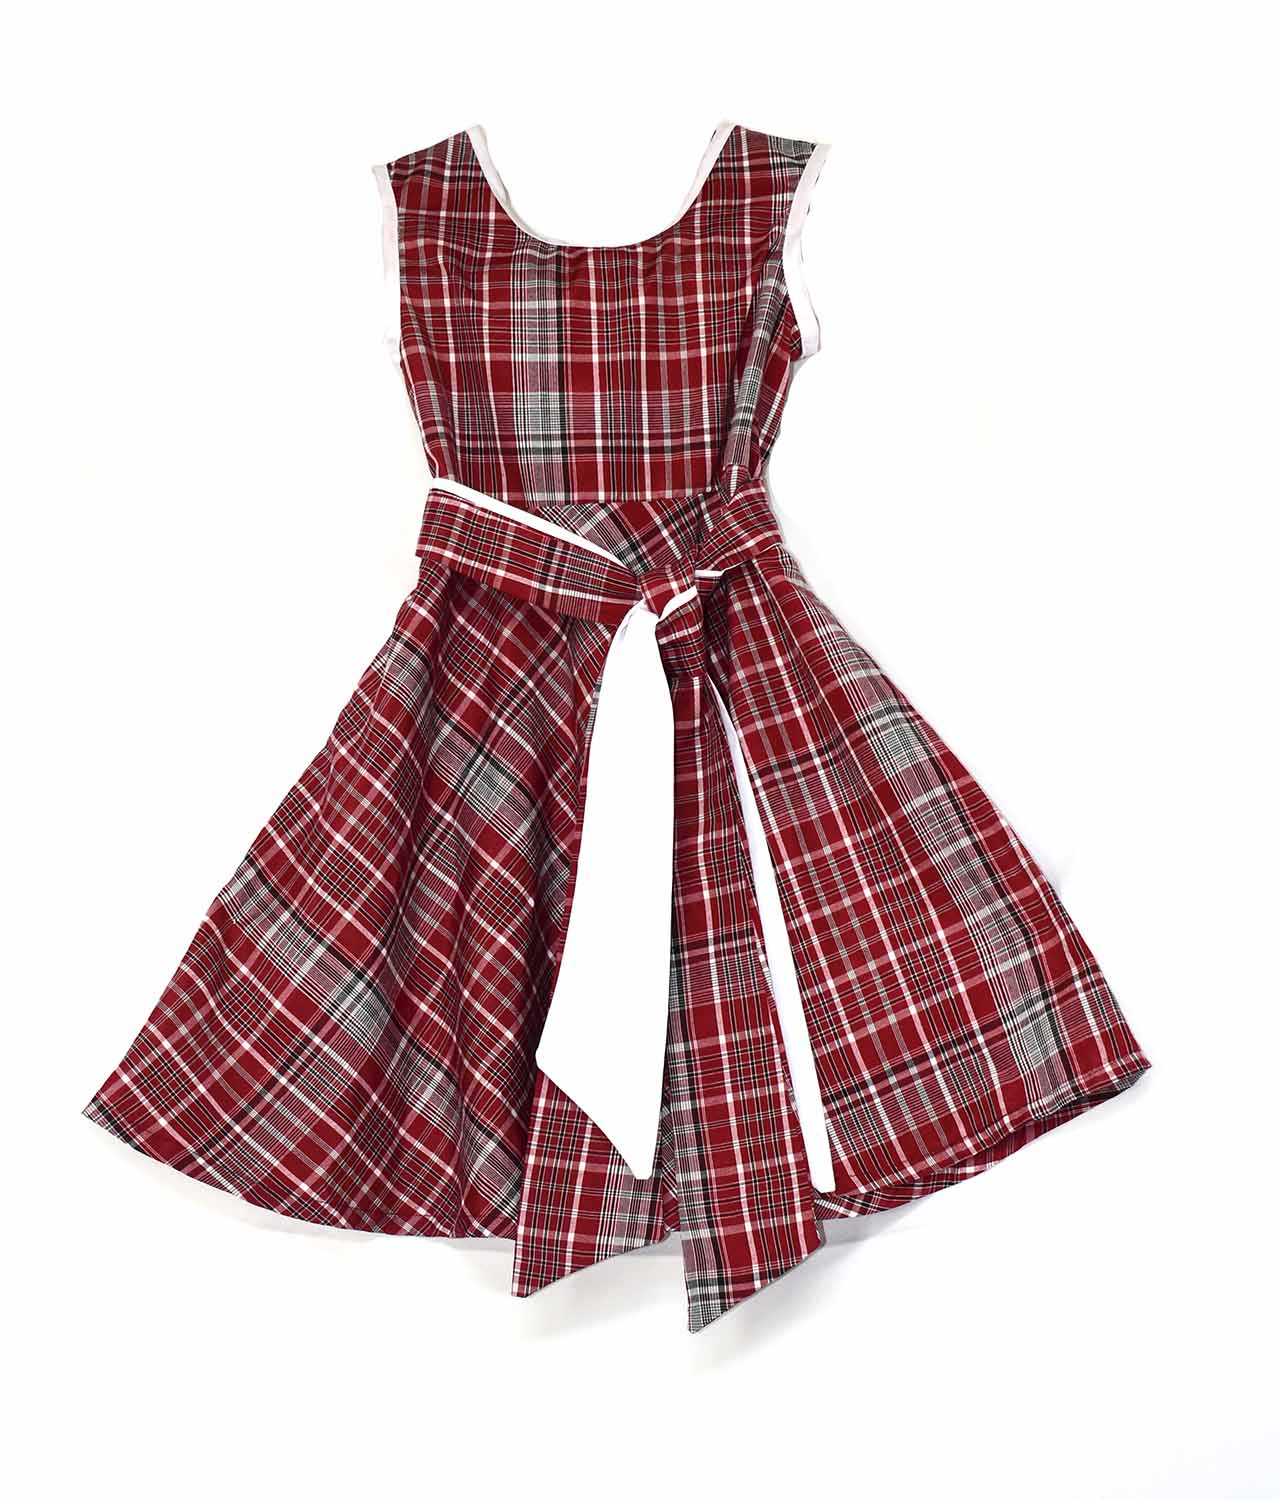 Bandana Dress (Size 5-6)